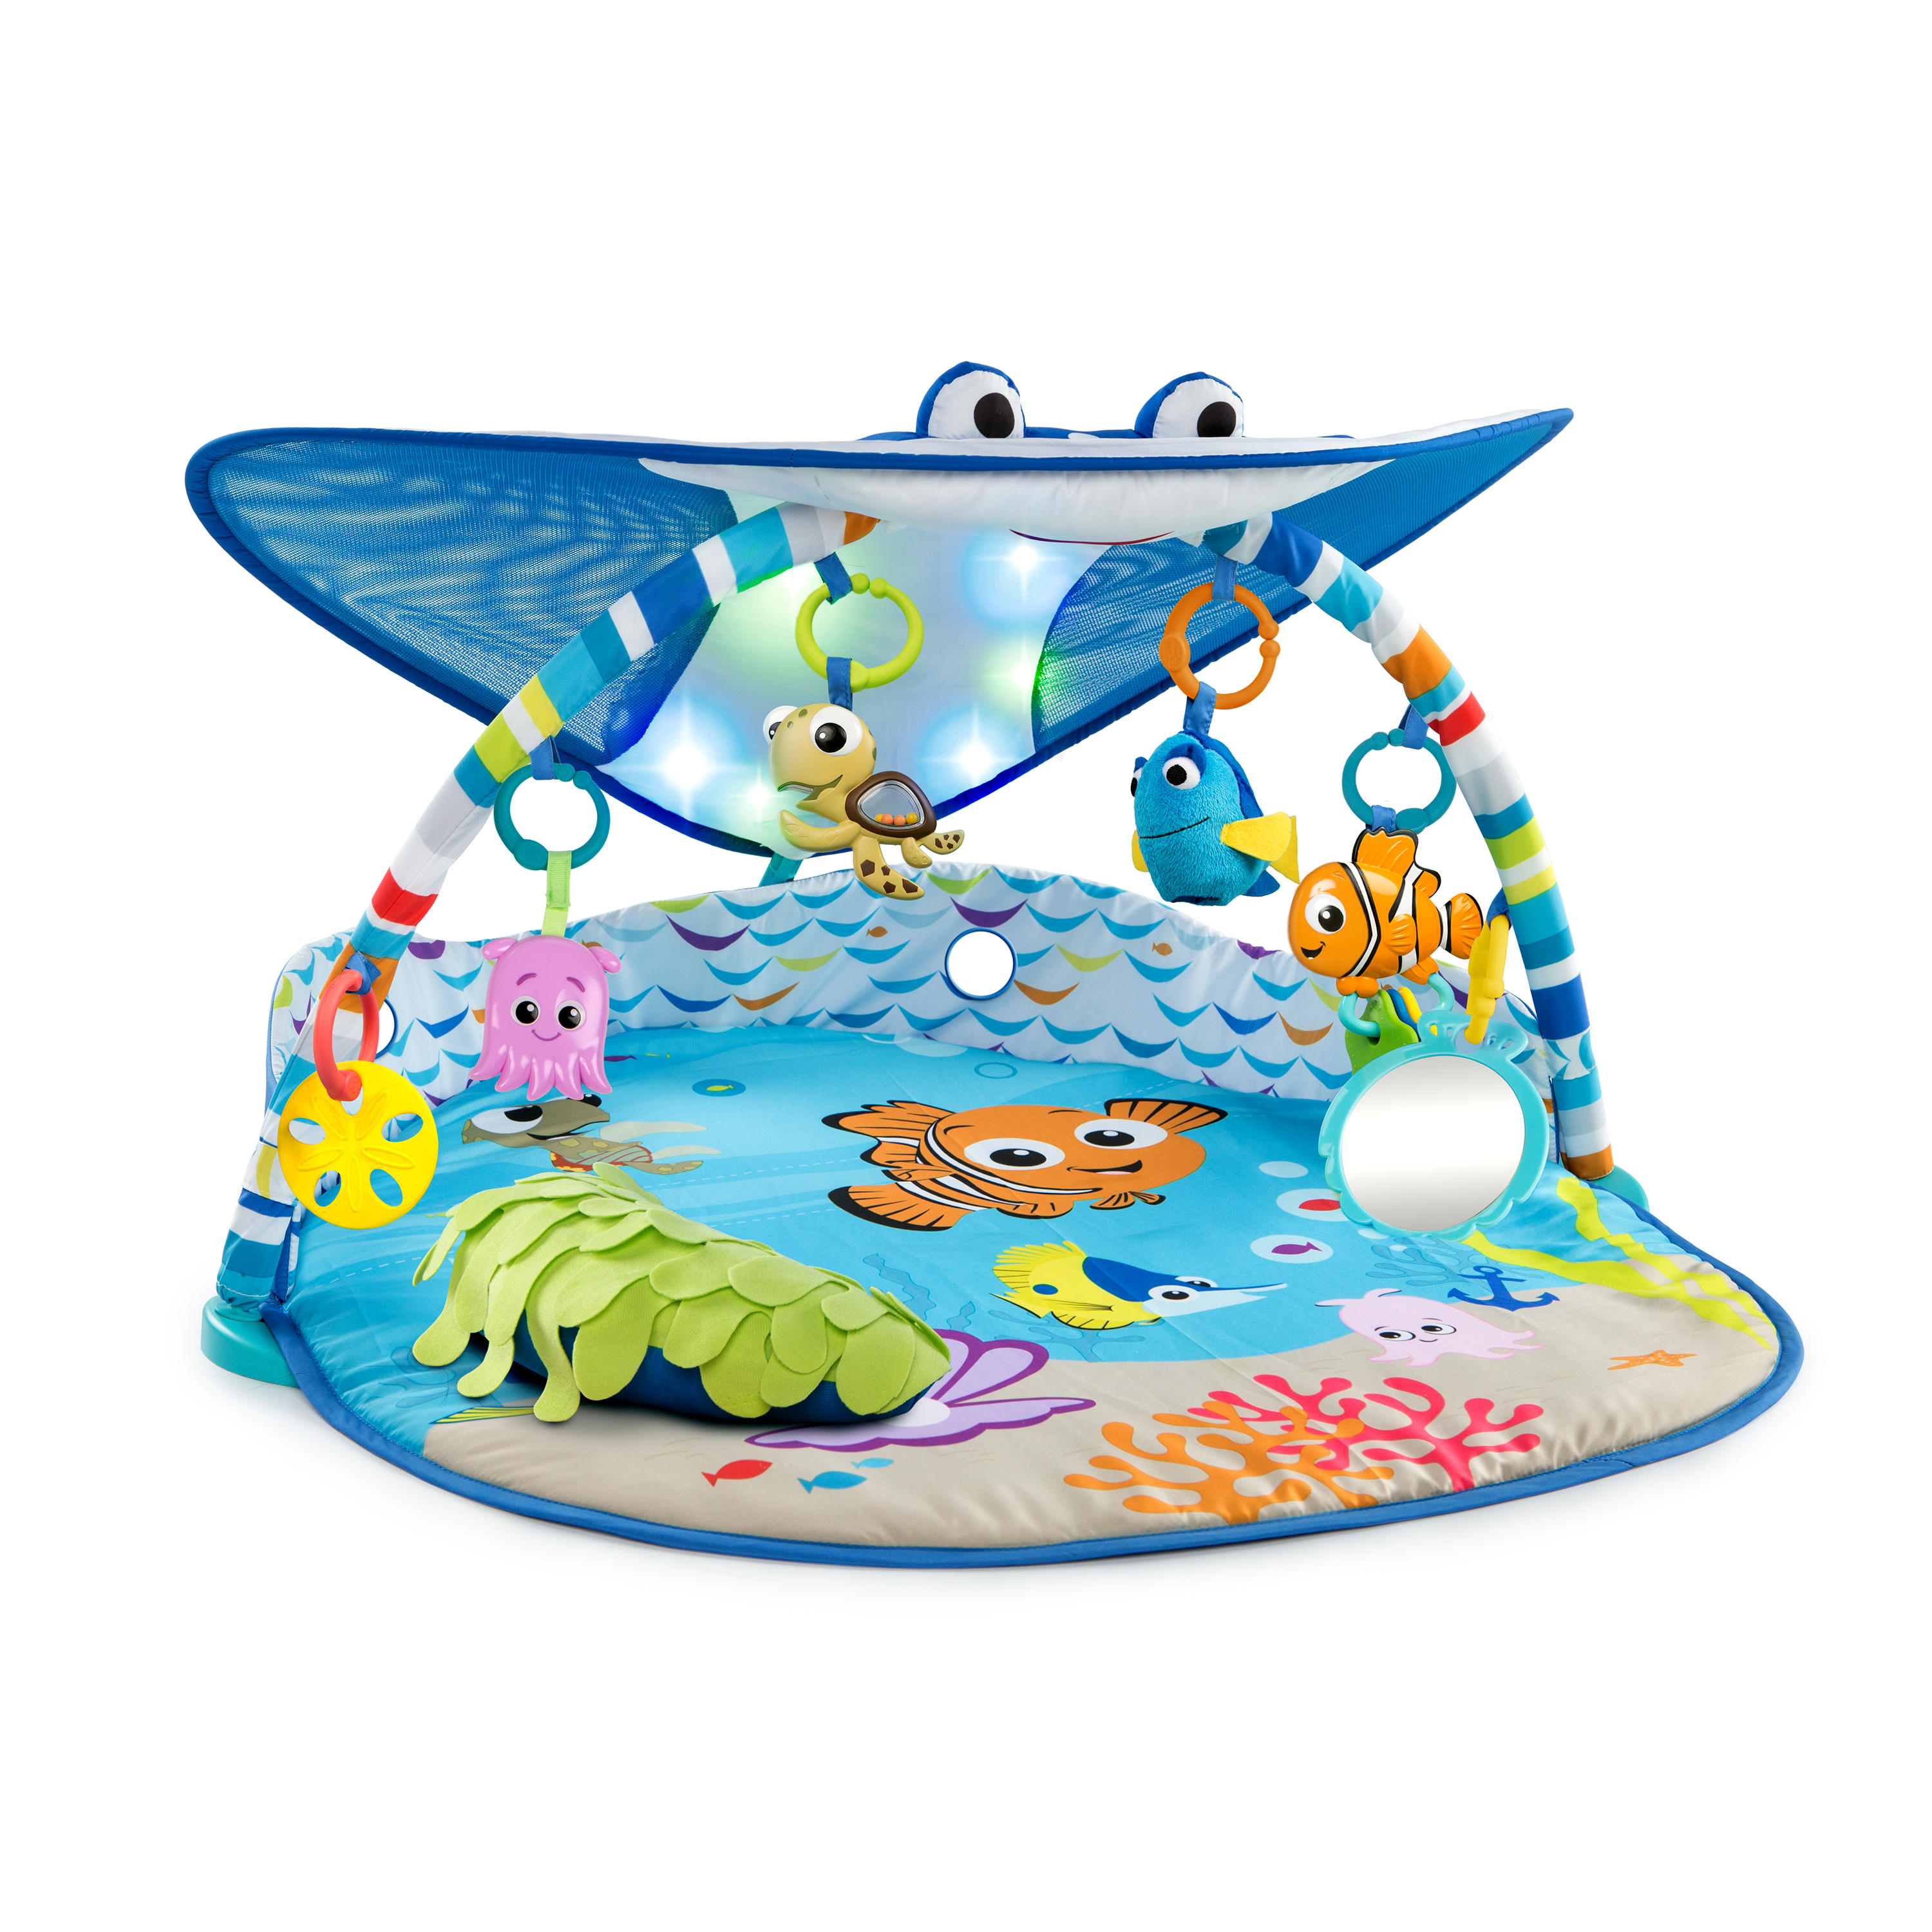 Mr. Ray Ocean Lights Activity Gym